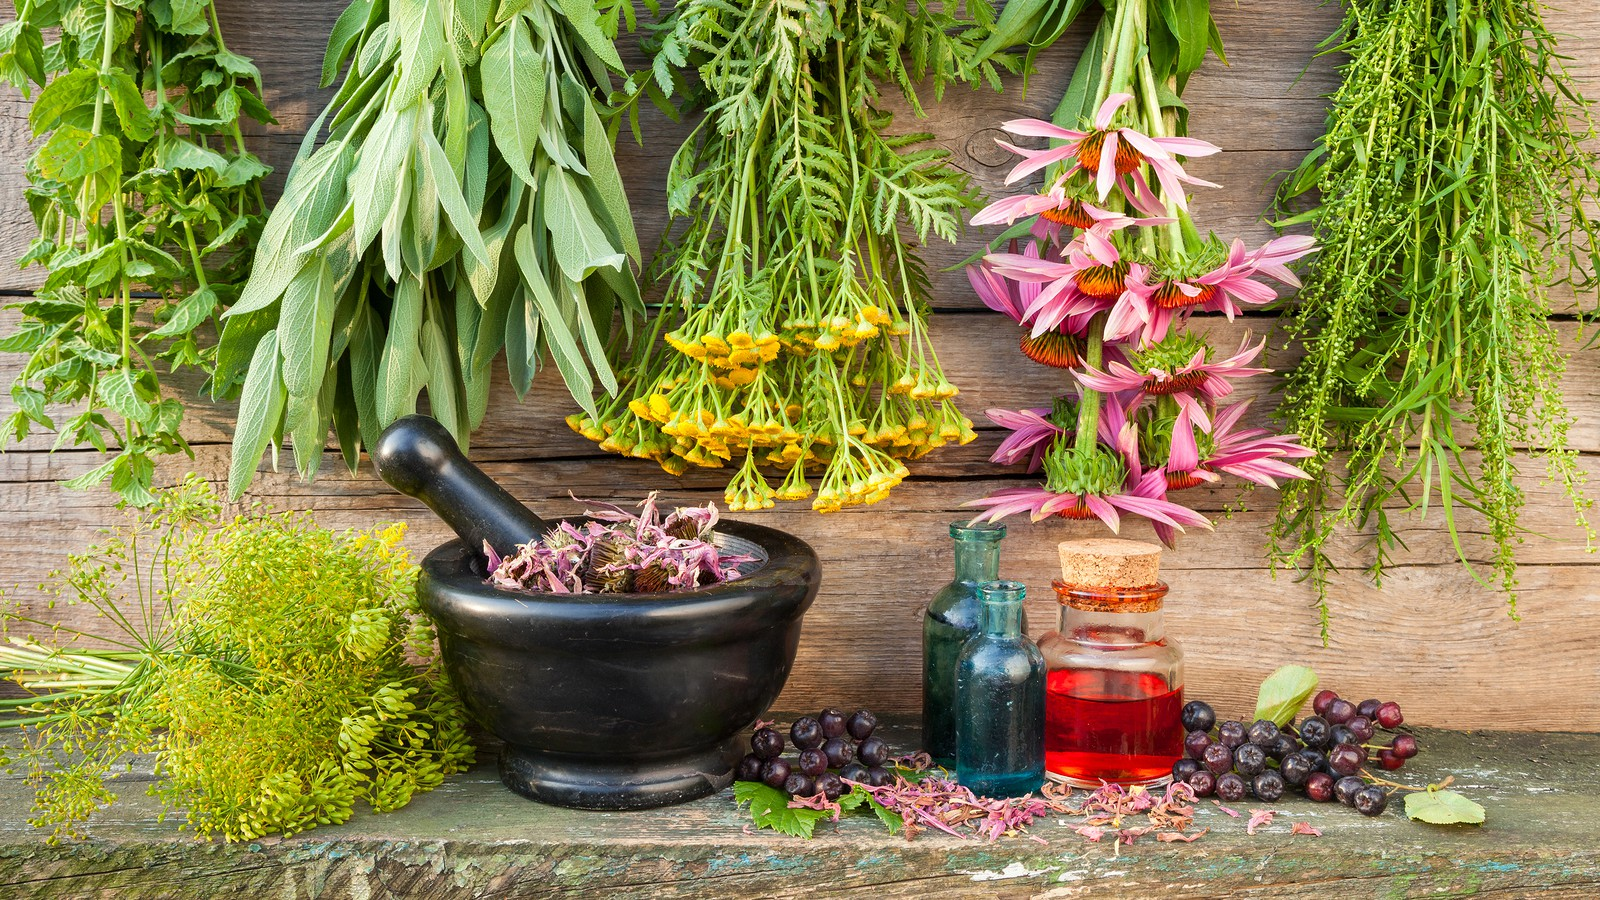 Online Certificate Program Or Ceu Broker Credits In Herbal Medicine 101 Body Wellness